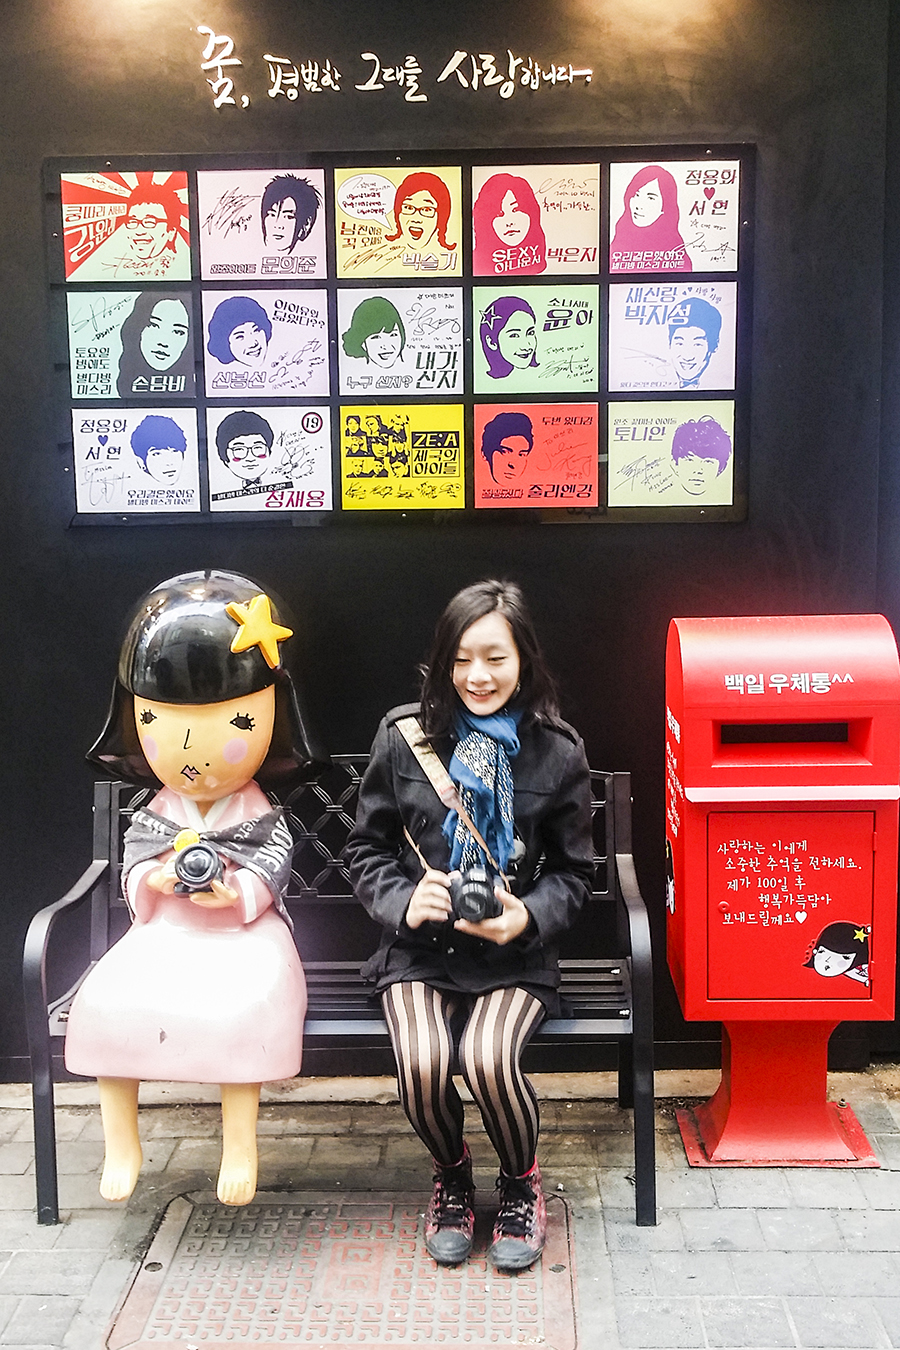 Taking a portrait with a cute statue outside Miss Lee Cafe in Myeongdong, Seoul, South Korea.